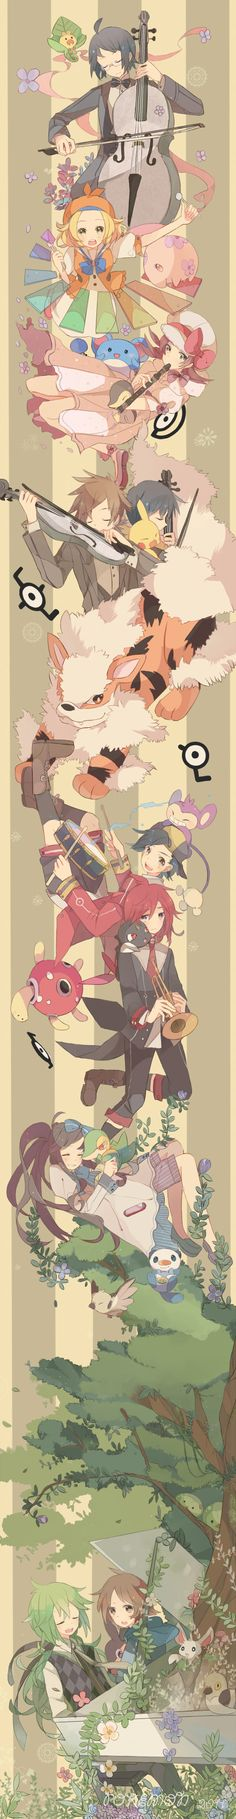 Each of the characters plays an instrument. THEY FORM A BAND!!!!!!!!!!!!!!!!!!!! LOL!!! xD I'M DIEING AT HOW STUPID I CAN BE!